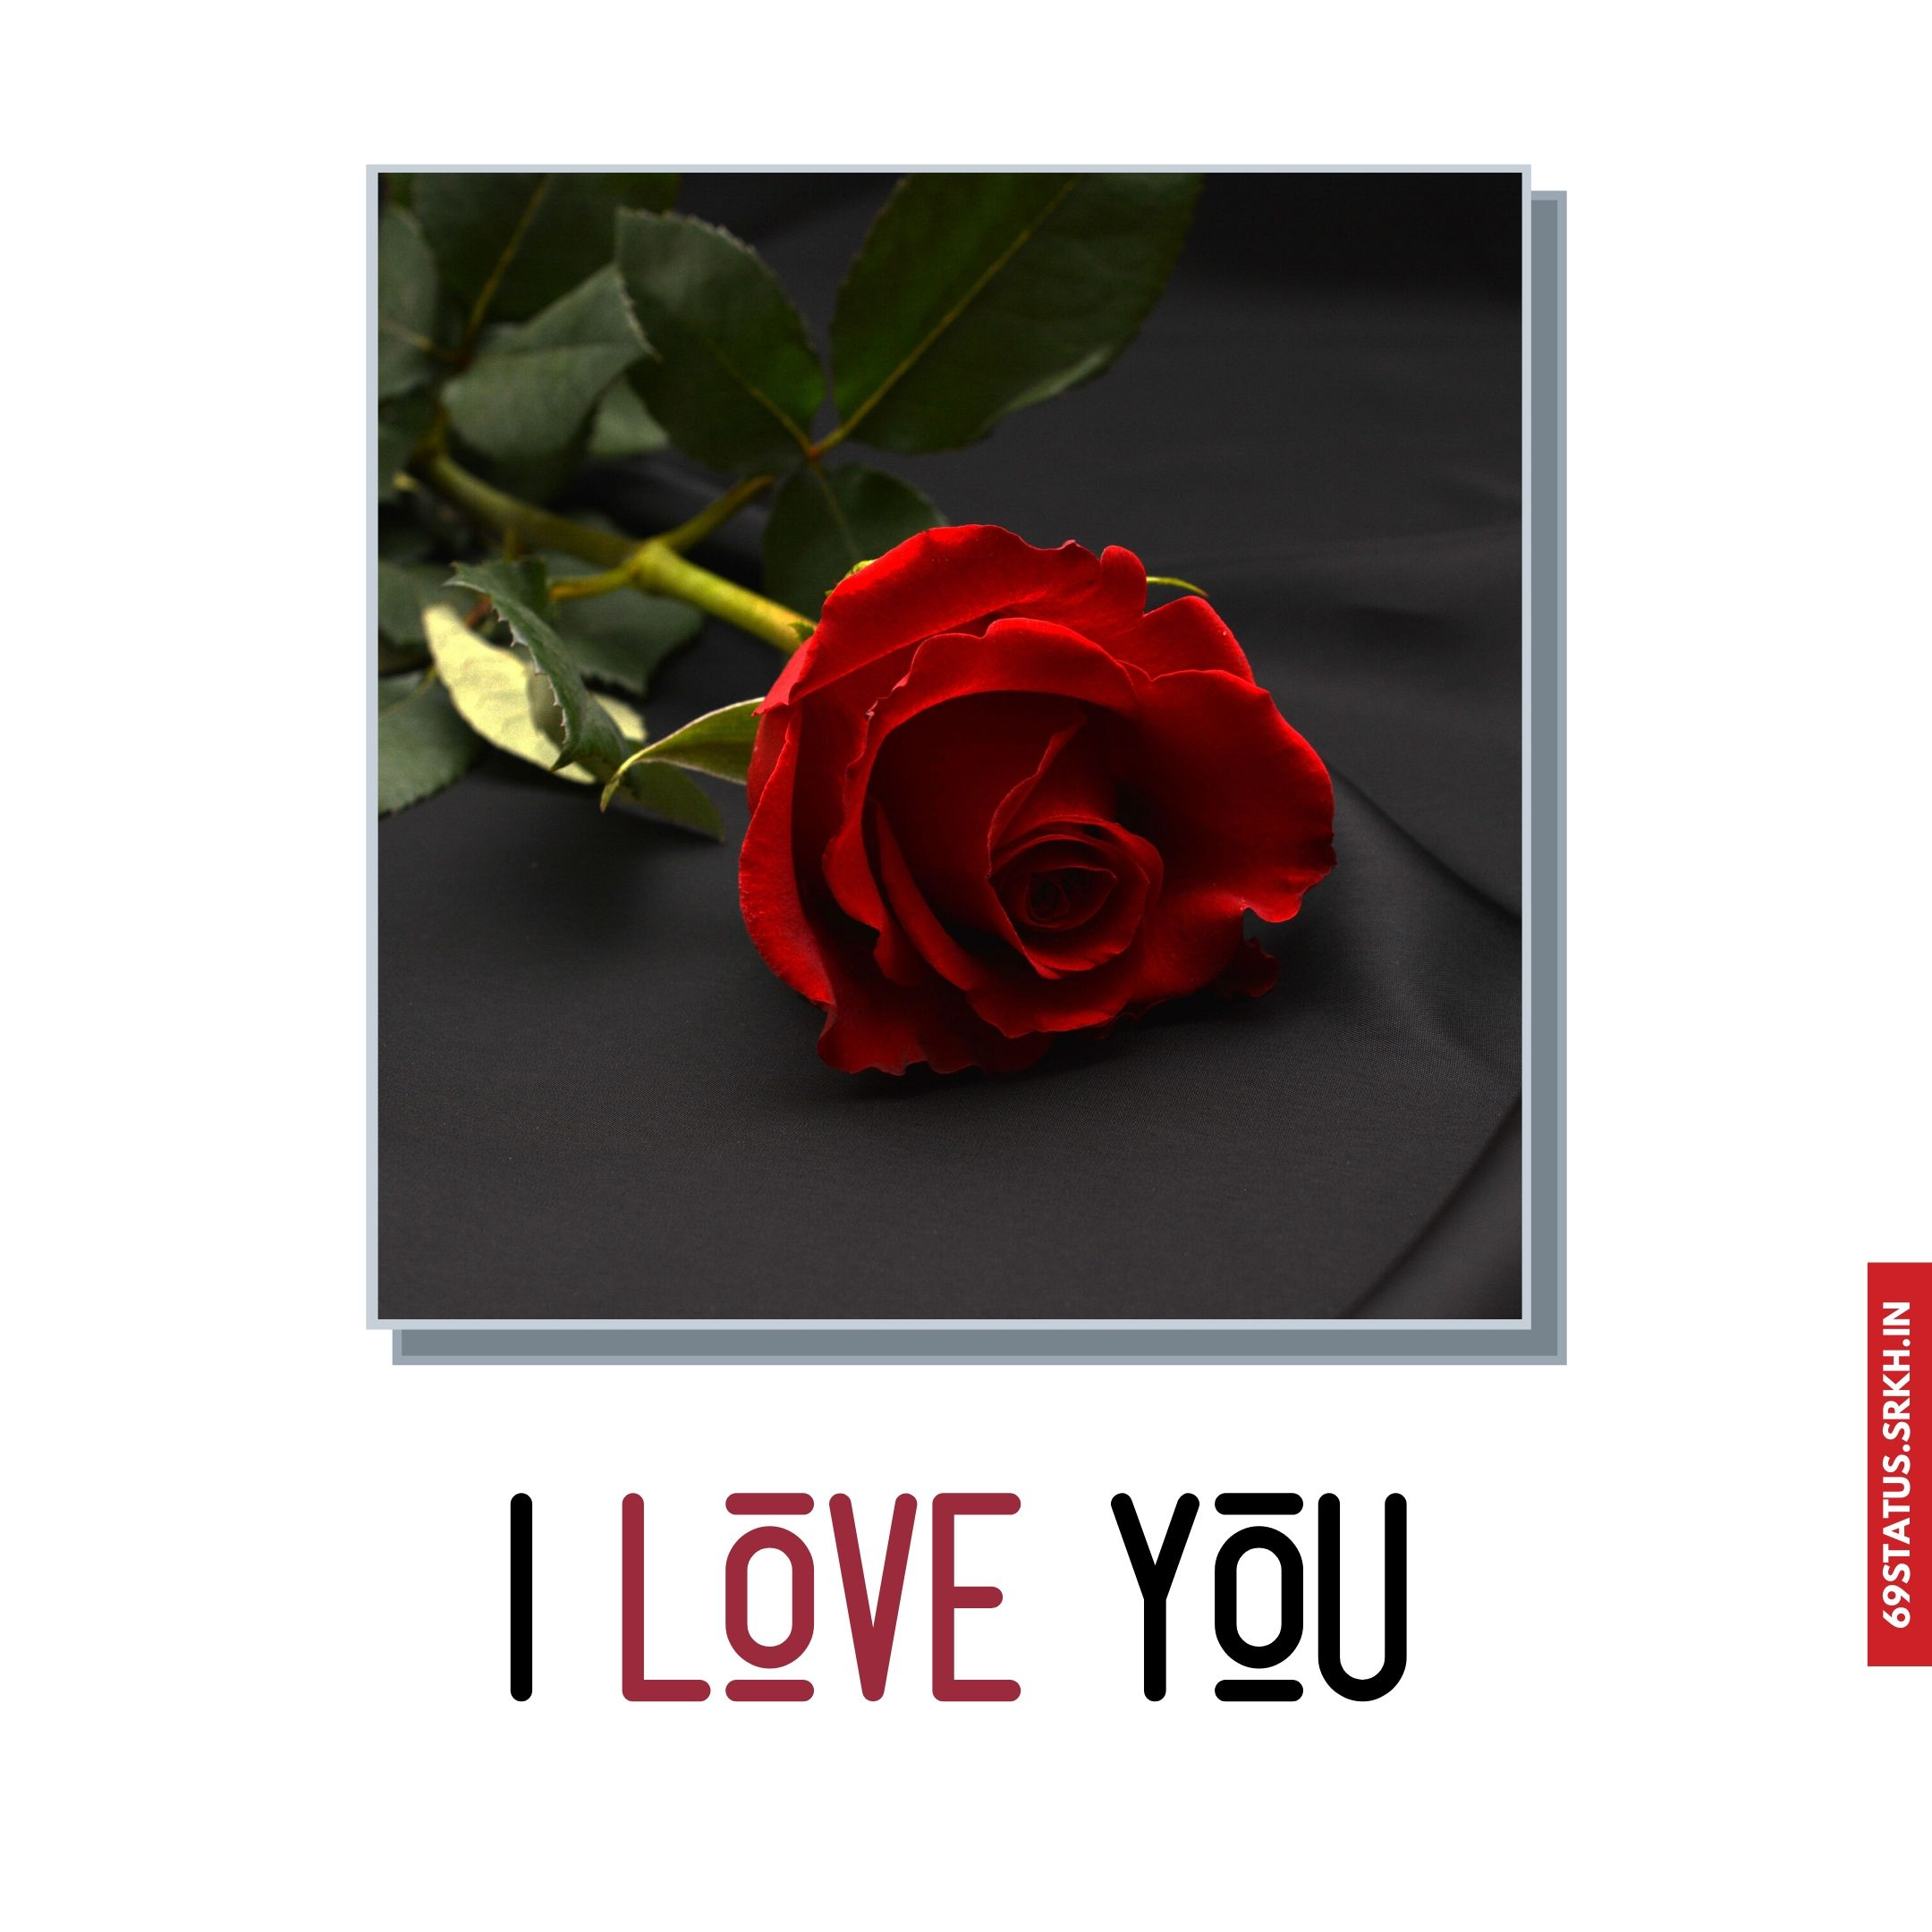 Images I Love You full HD free download.